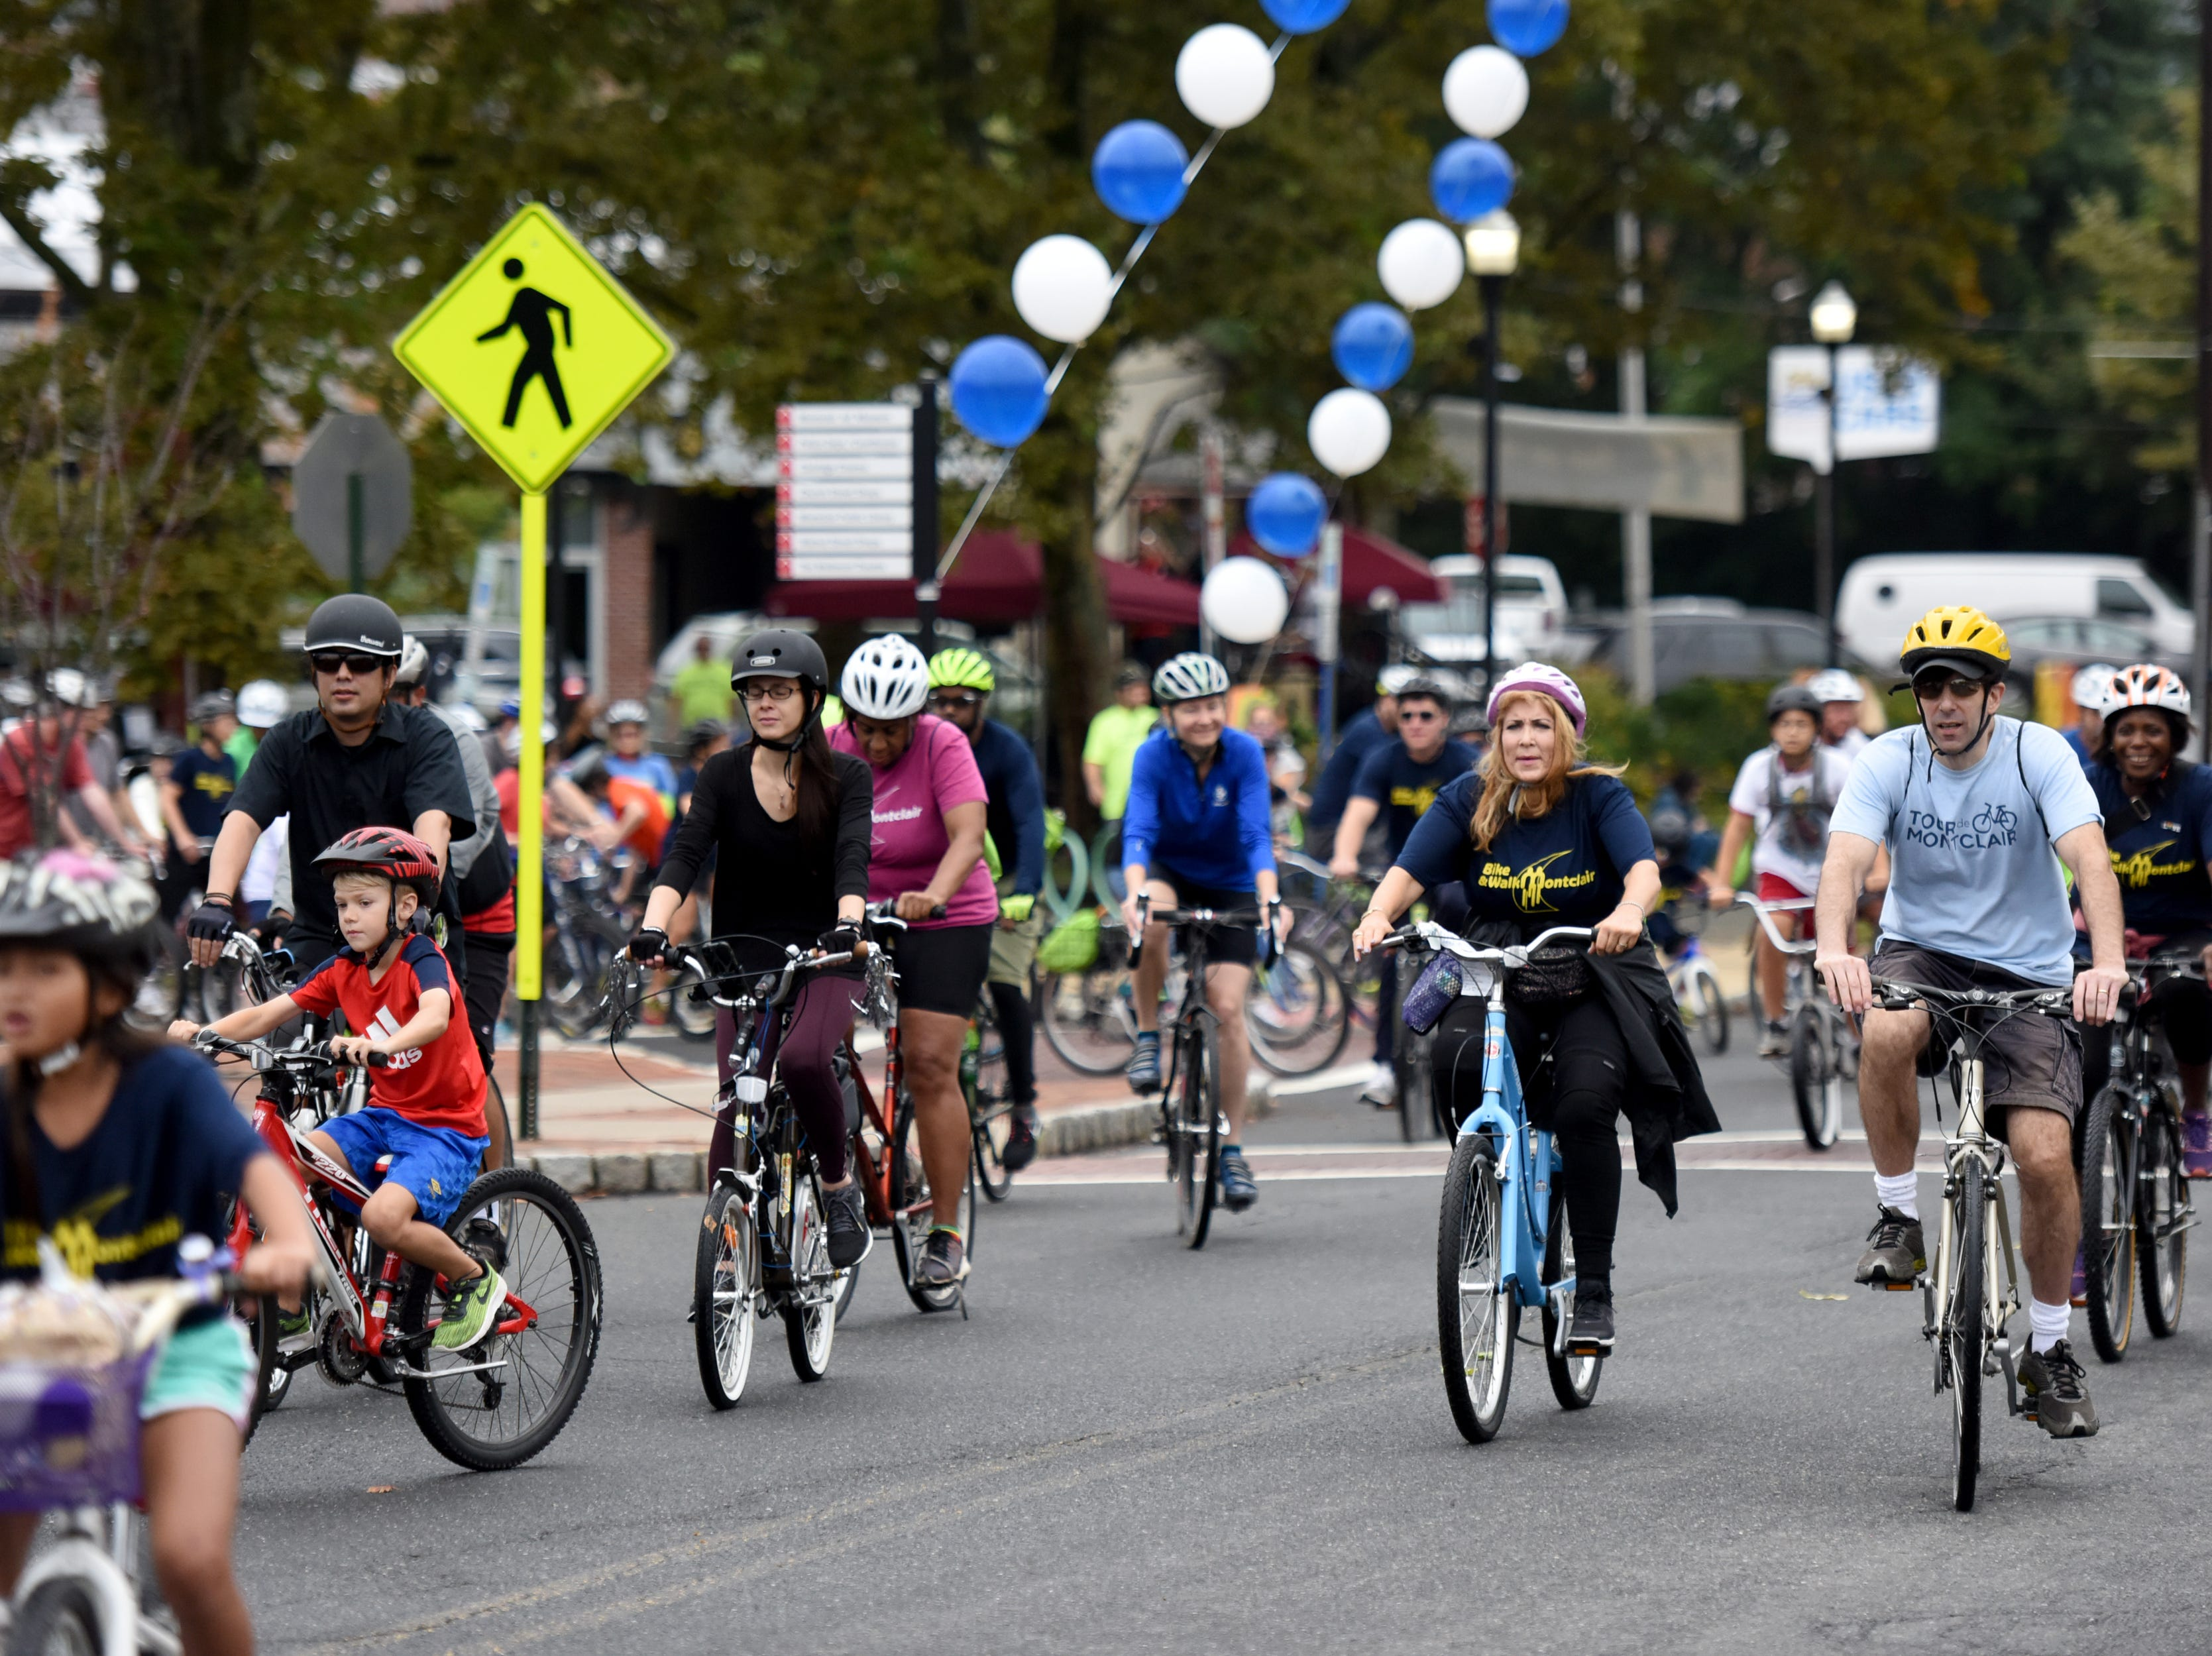 The Tour de Montclair a family-friendly bike ride with 6- and 12- mile options was held on Sunday, October 7, 2018. Cyclists leave for the ride from Crane Park.